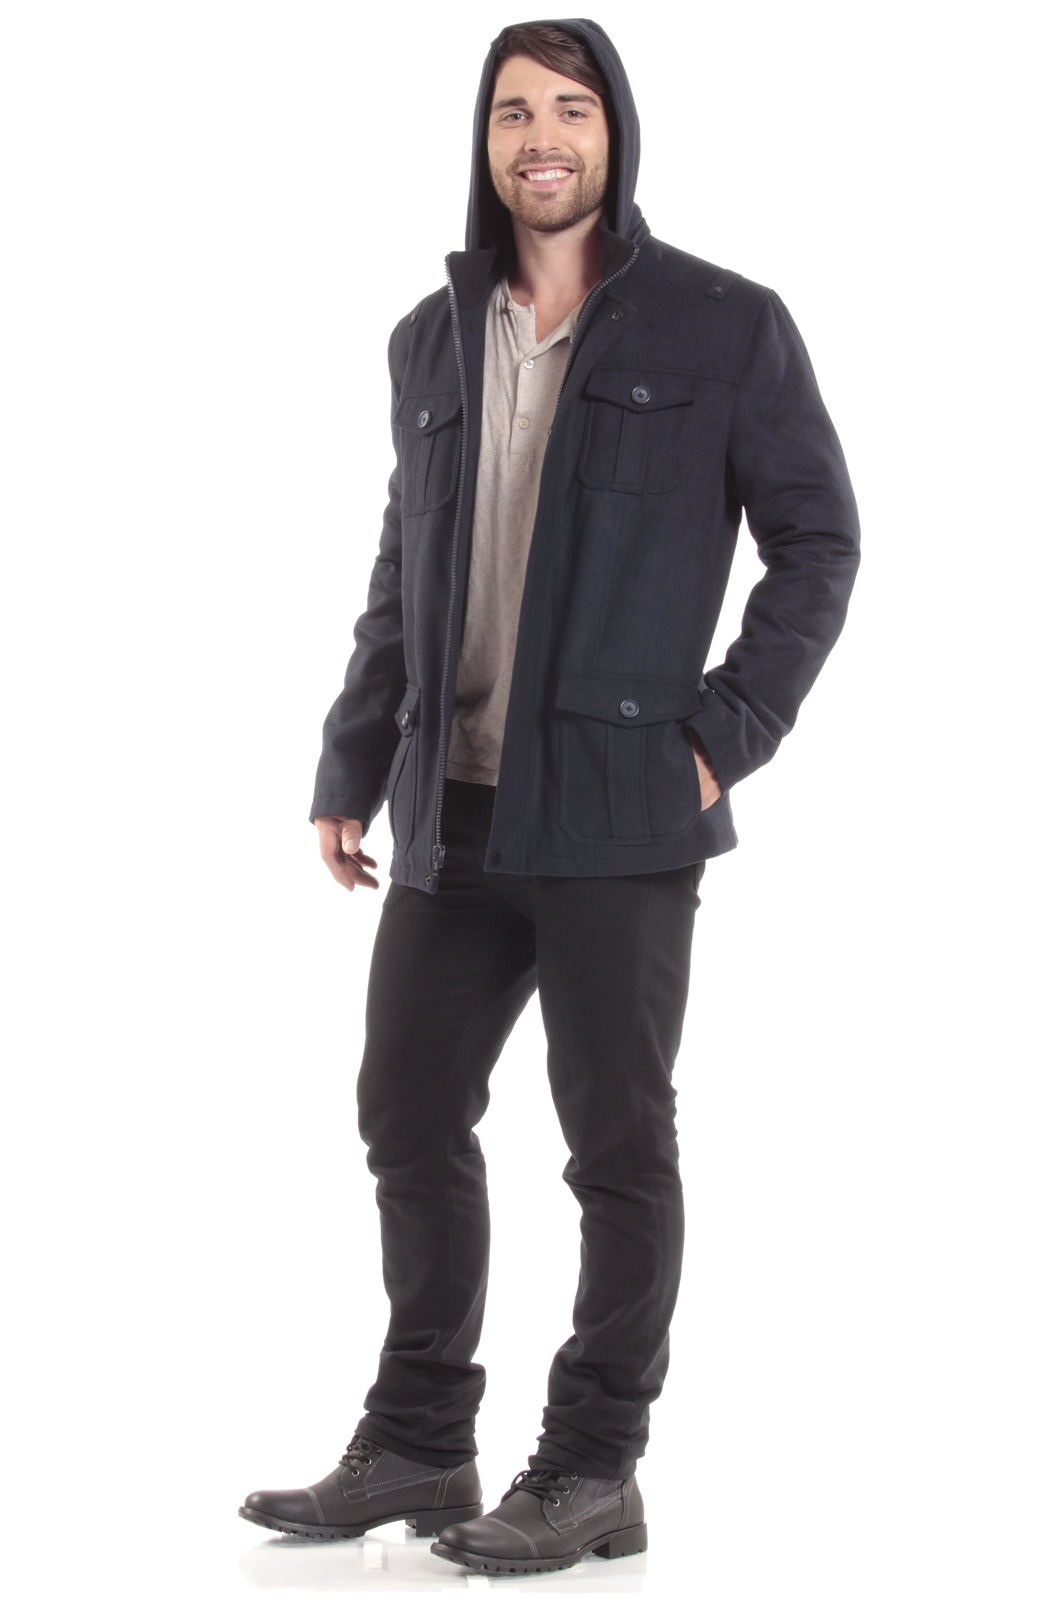 Alpine-Swiss-Noah-Mens-Wool-Coat-Parka-with-Removable-Hood-Jacket-Cargo-Pockets thumbnail 43